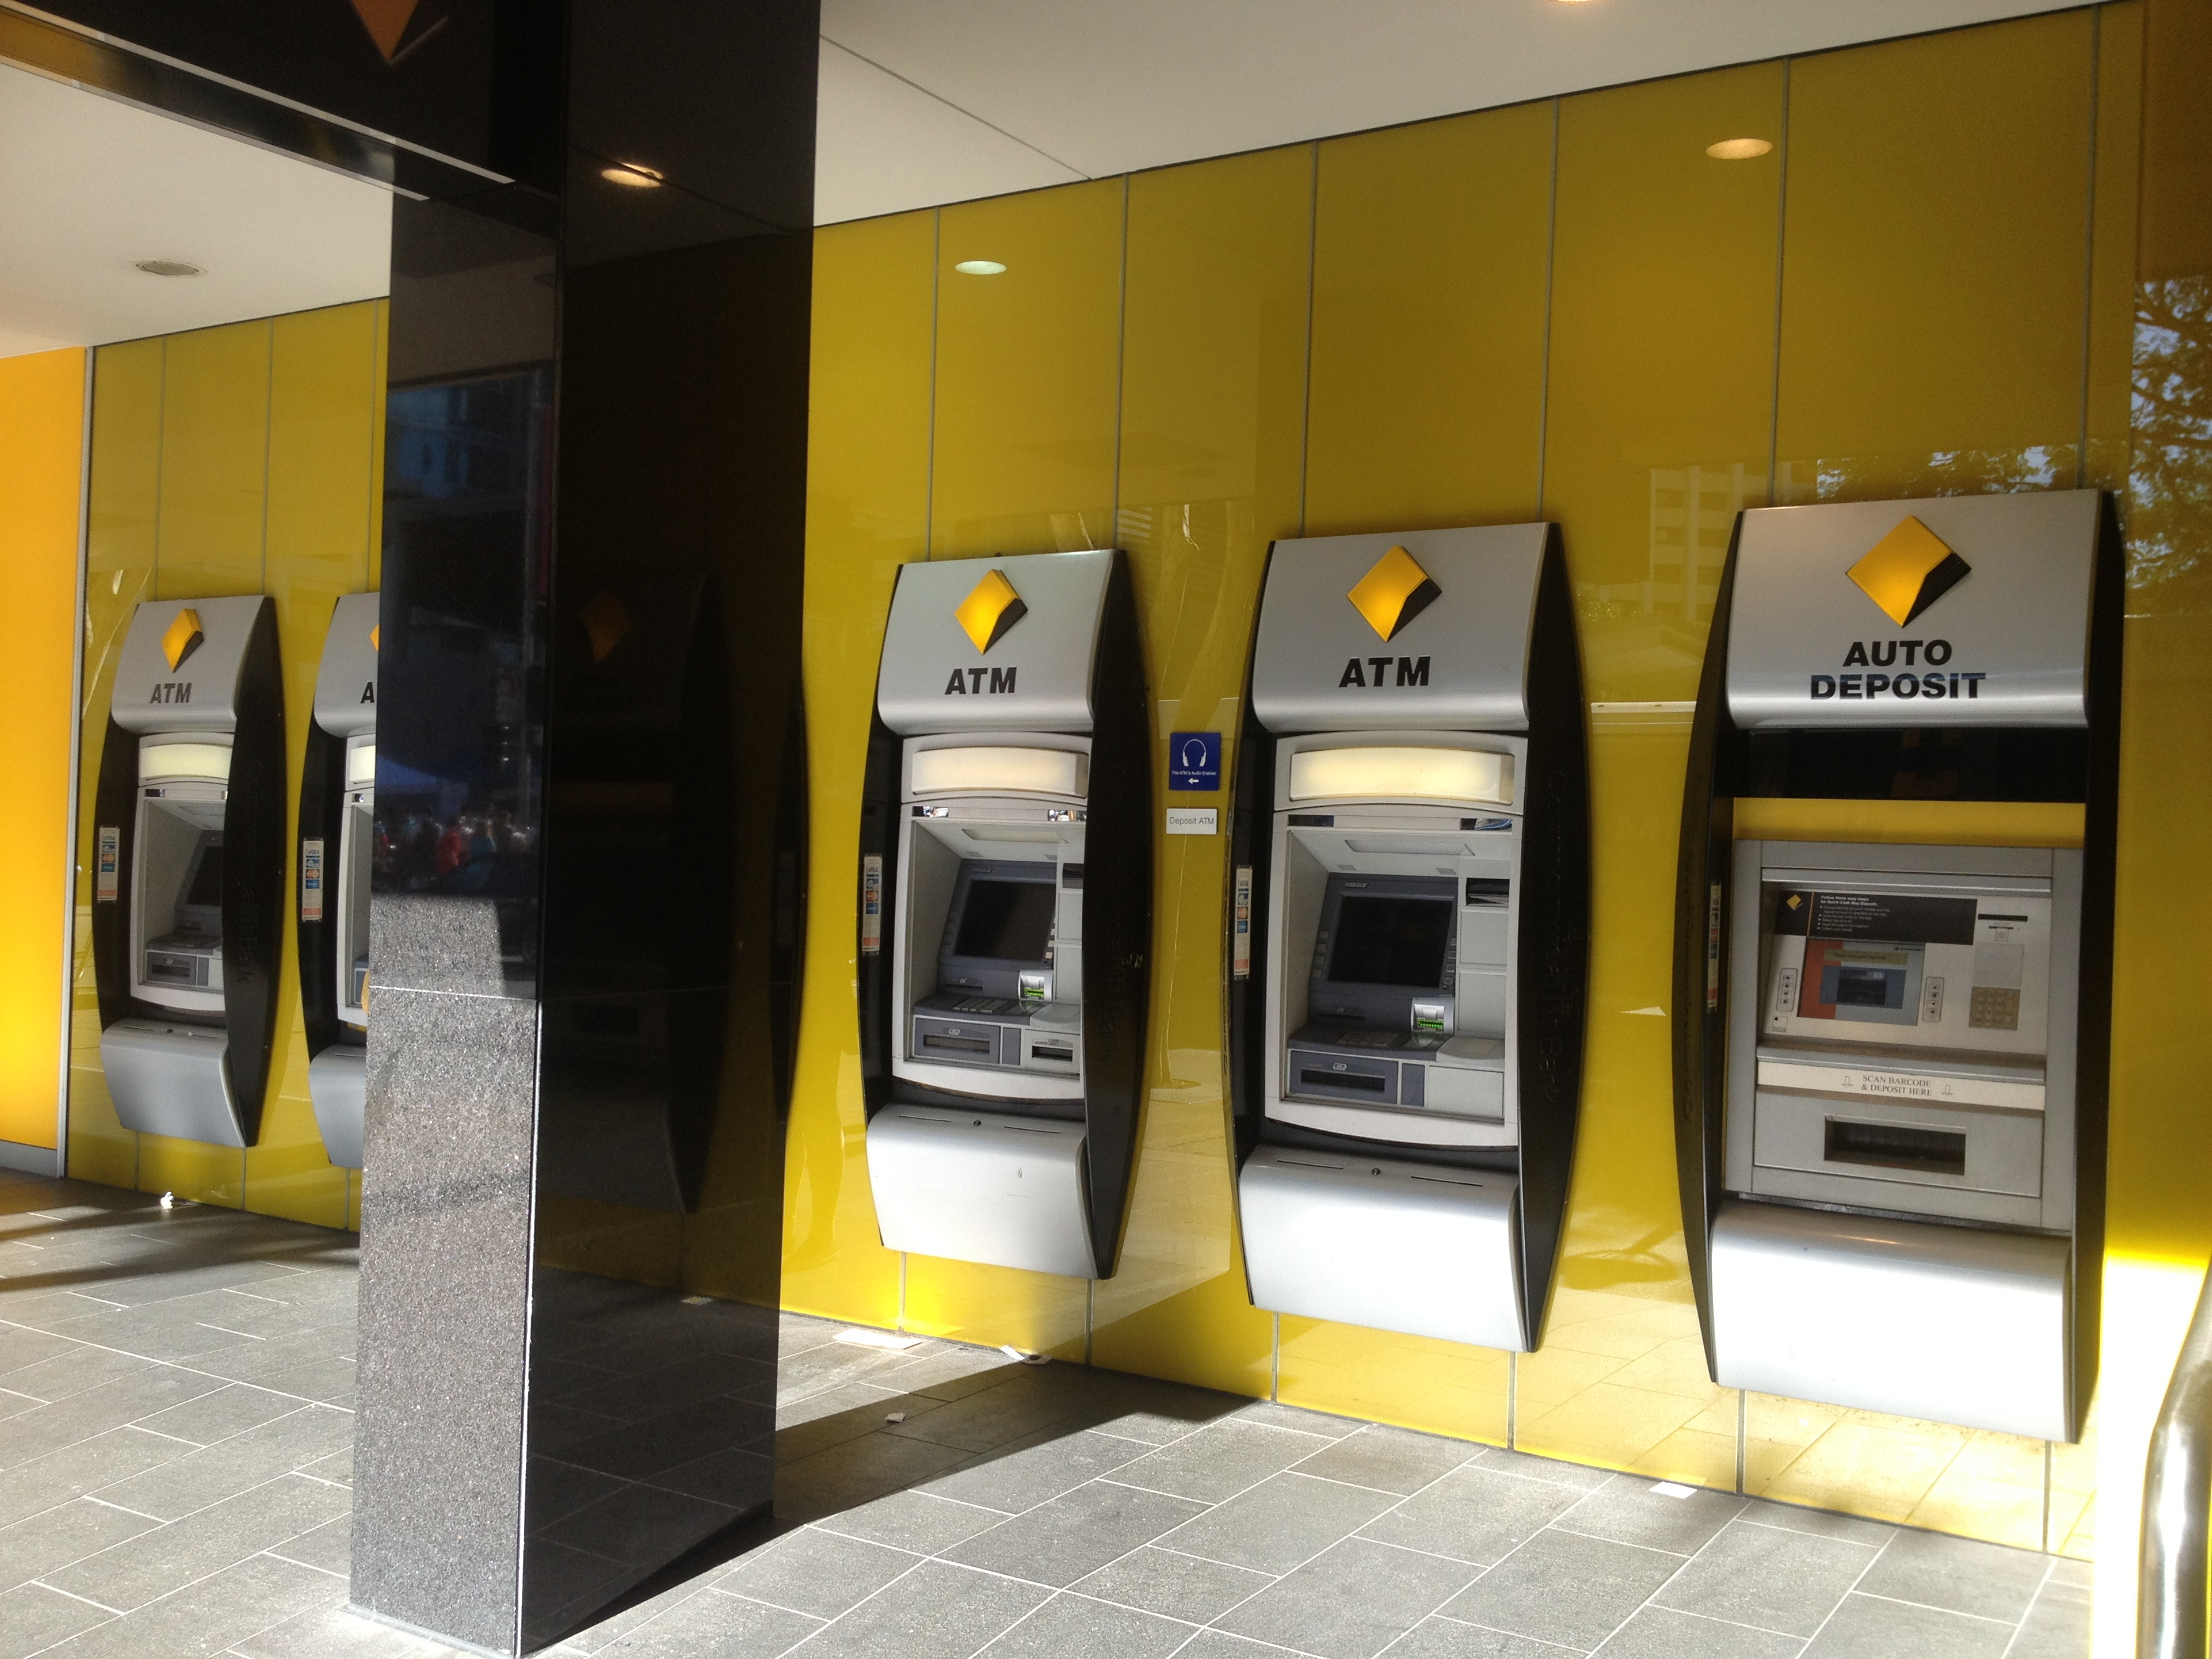 Commonwealth Bank creates cash withdrawals using a smartphone app #timsabre